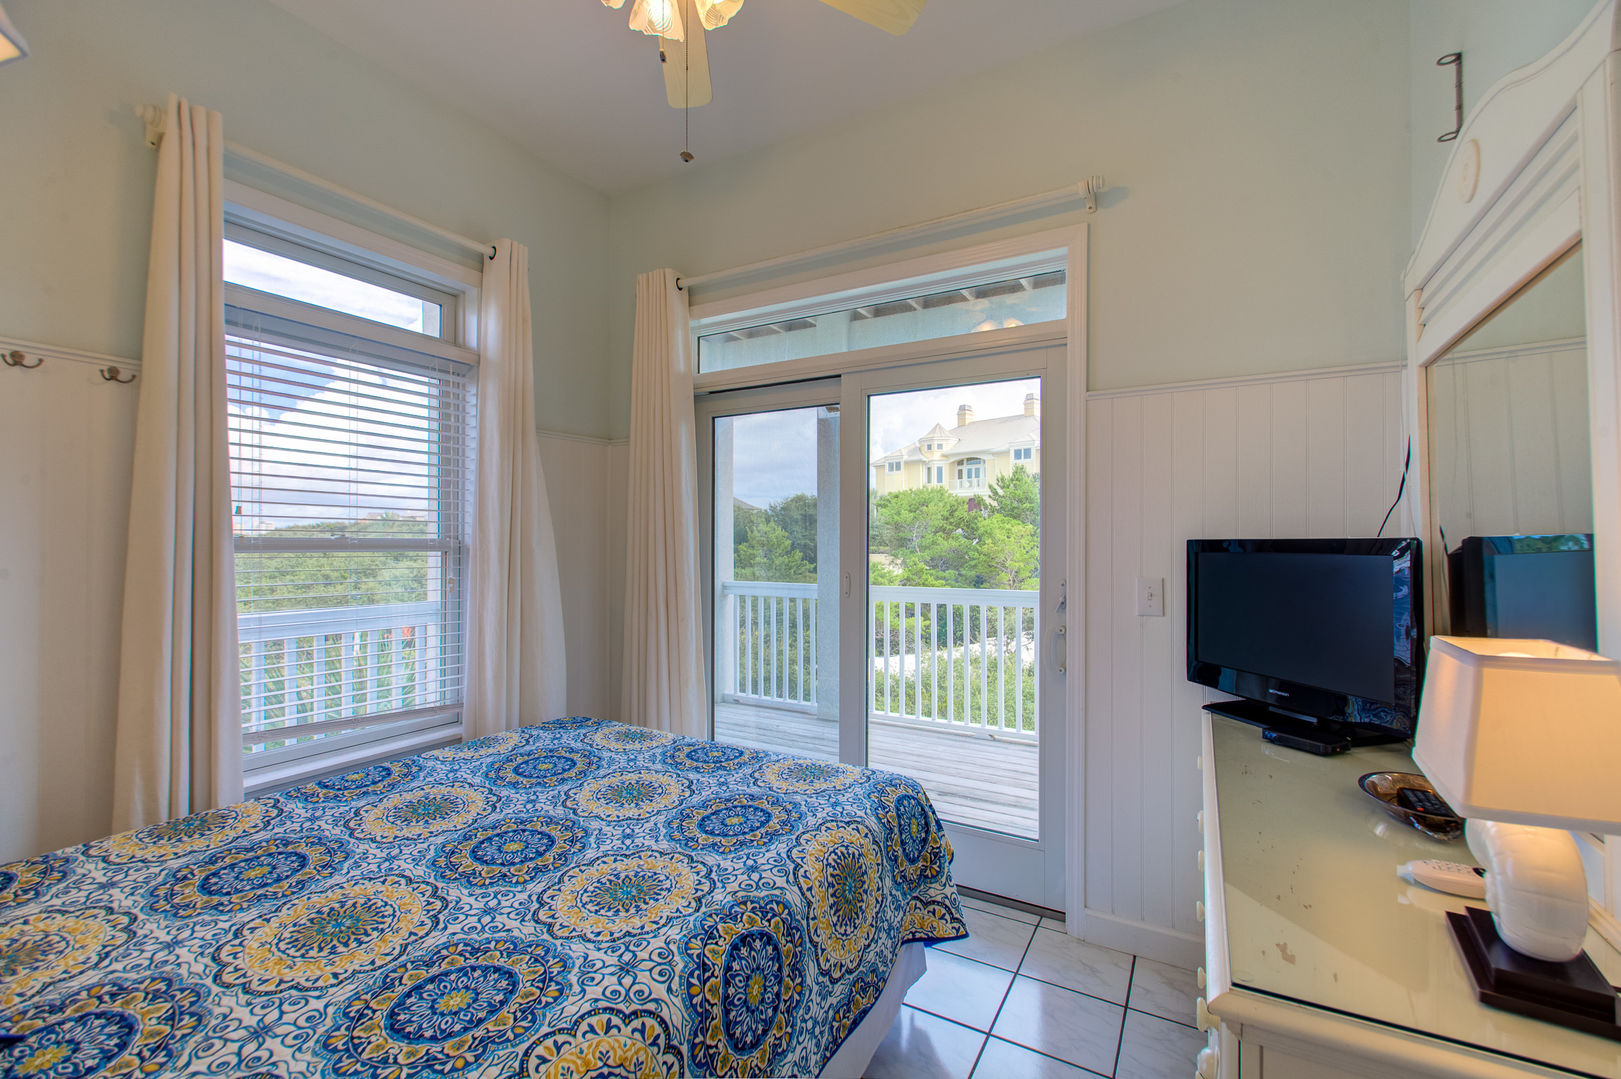 Bedroom Has Balcony Access and an LCD TV.